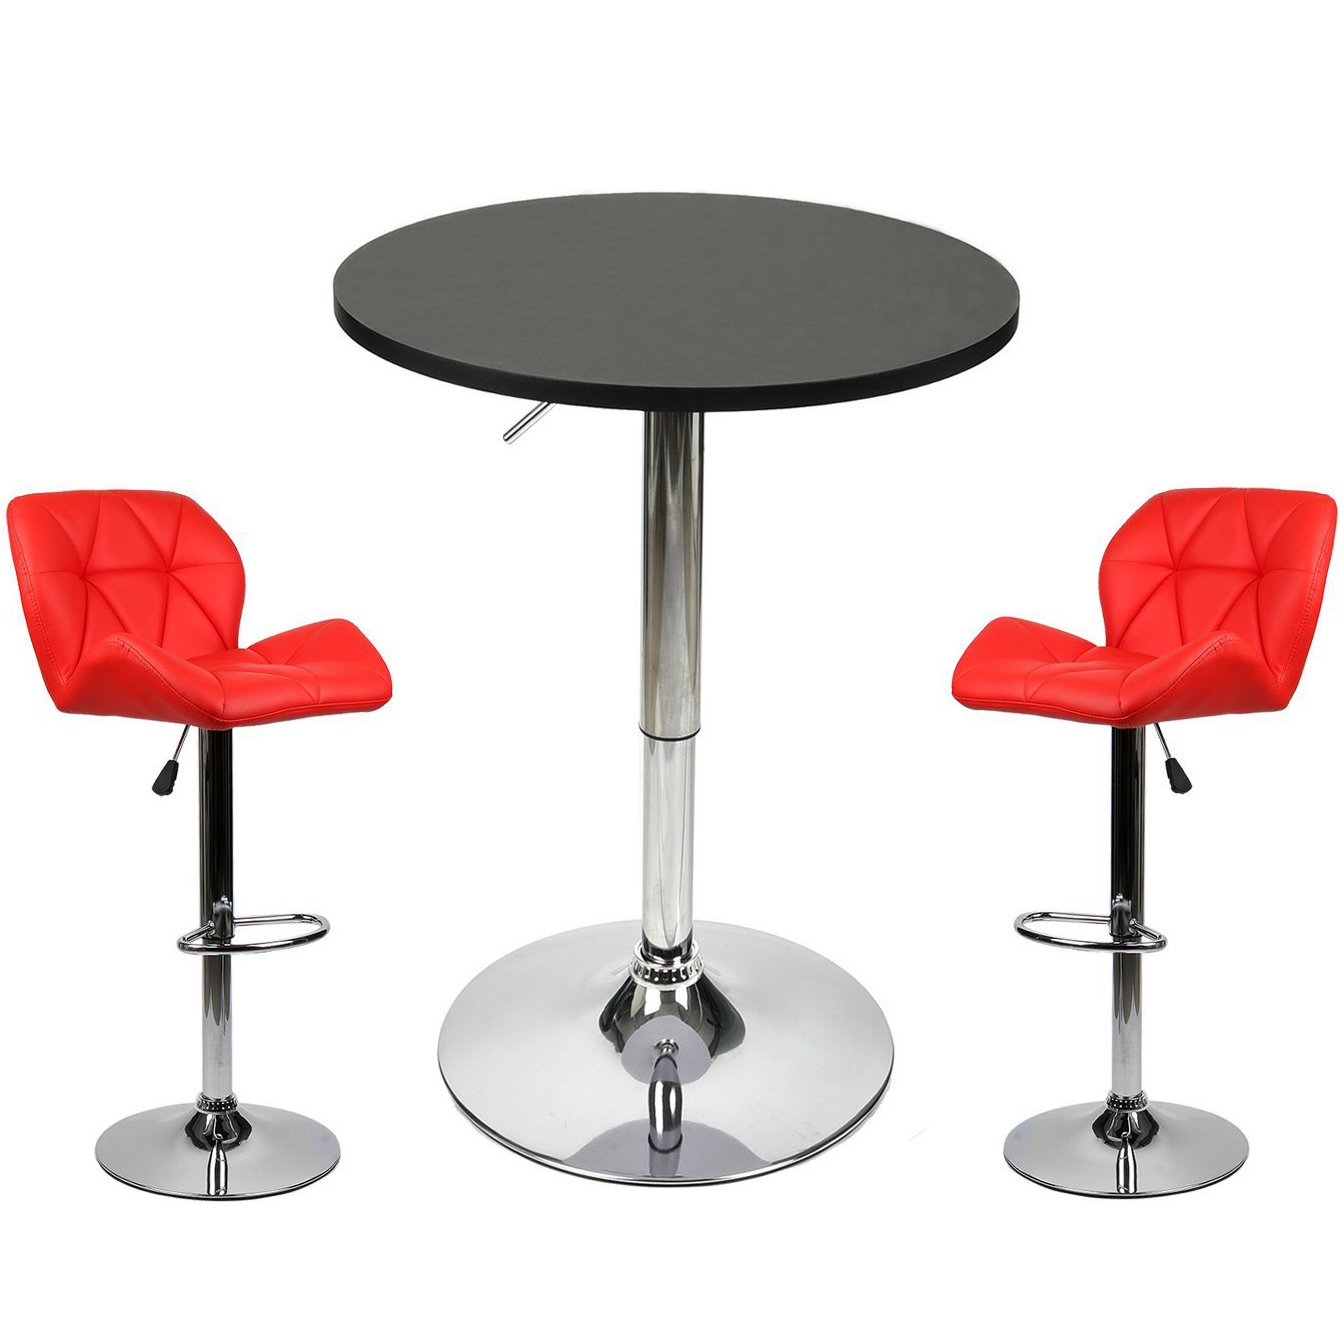 Amazon com elecwish pub table with bar stools set for kitchen home dining room red set a kitchen dining